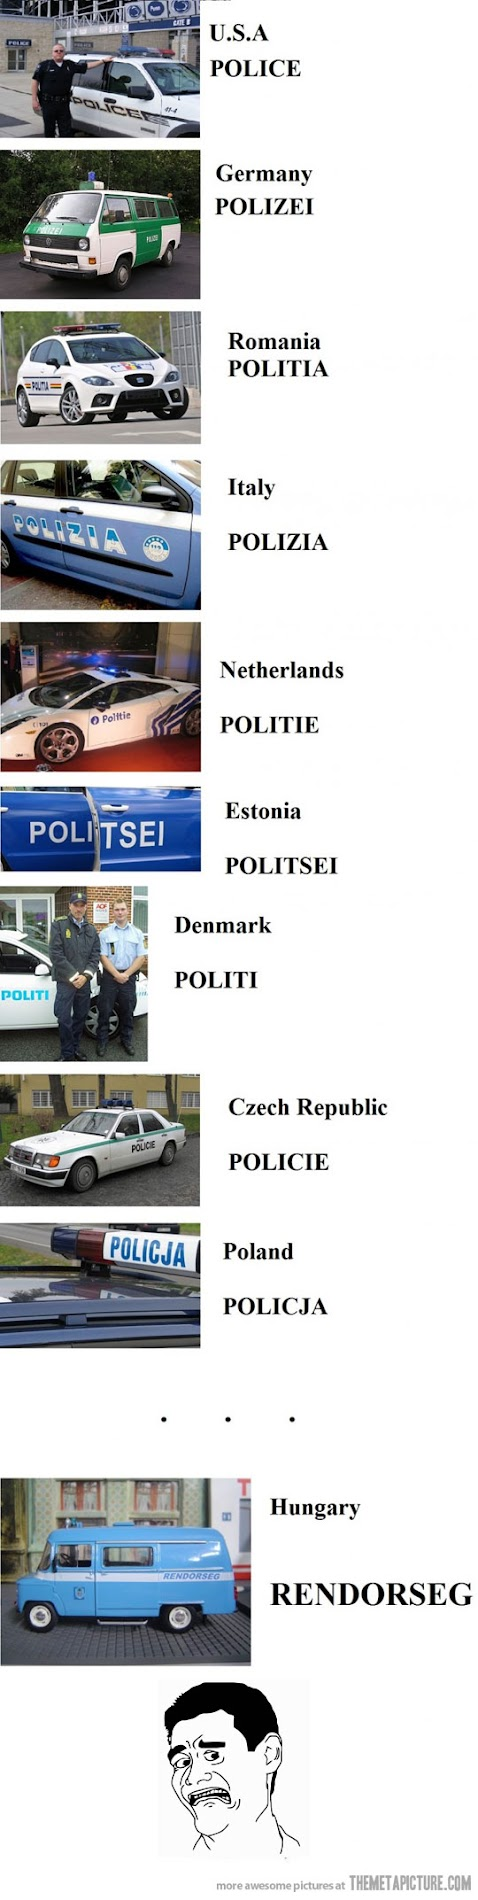 police in different parts of the world